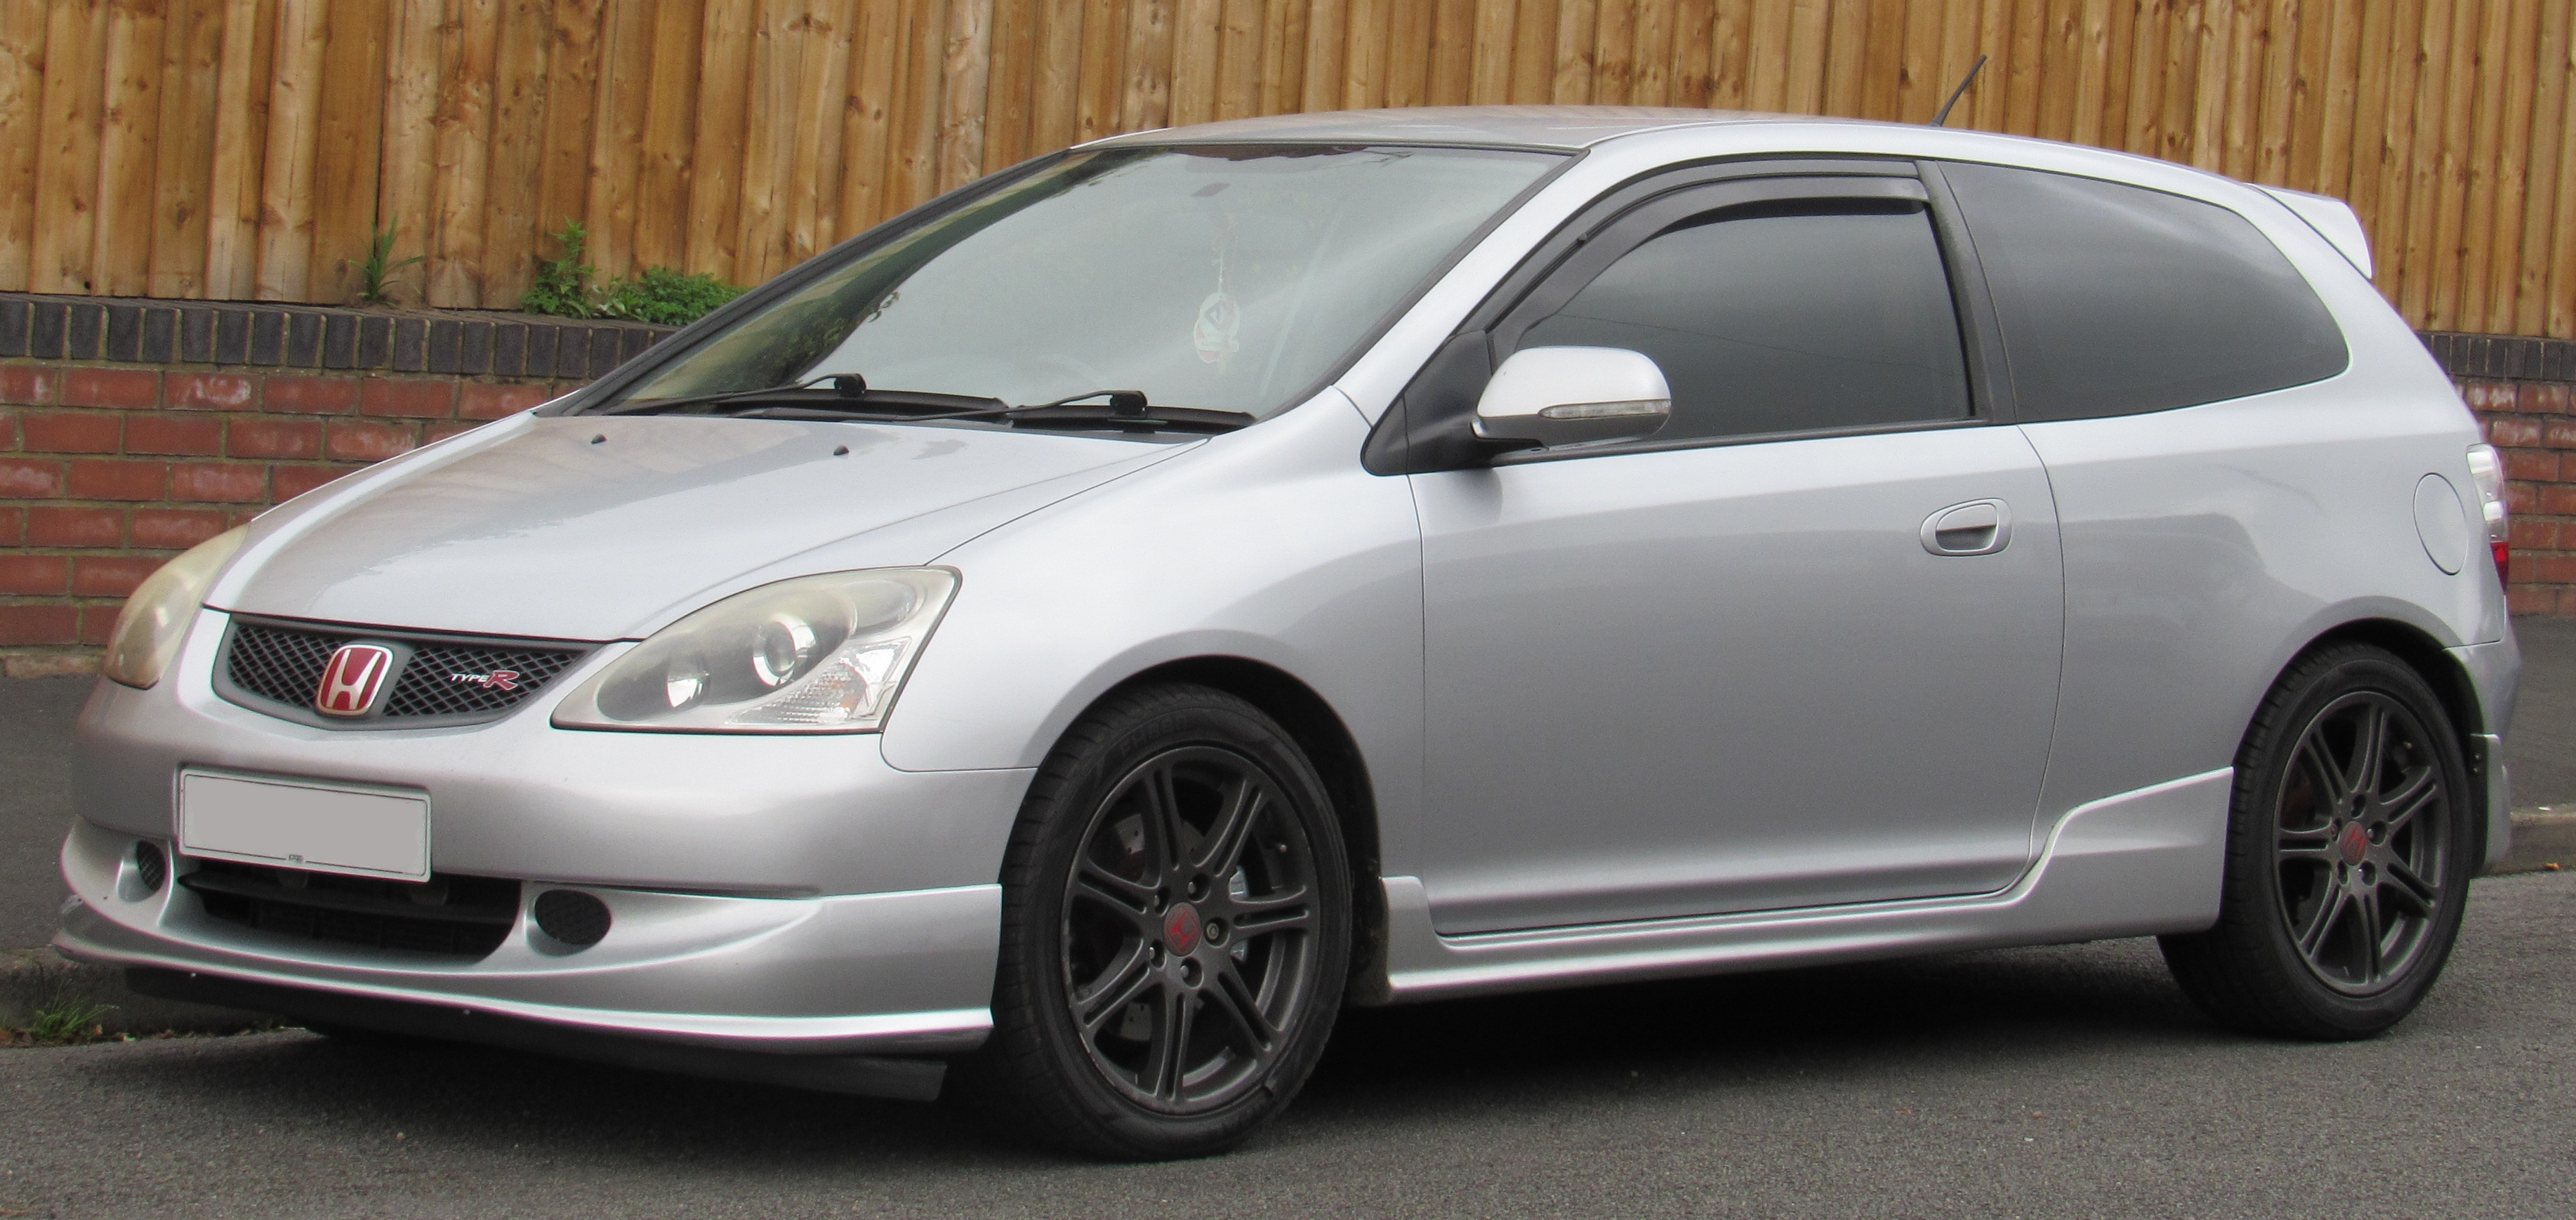 File:2005 Honda Civic Type R 2.0 Front